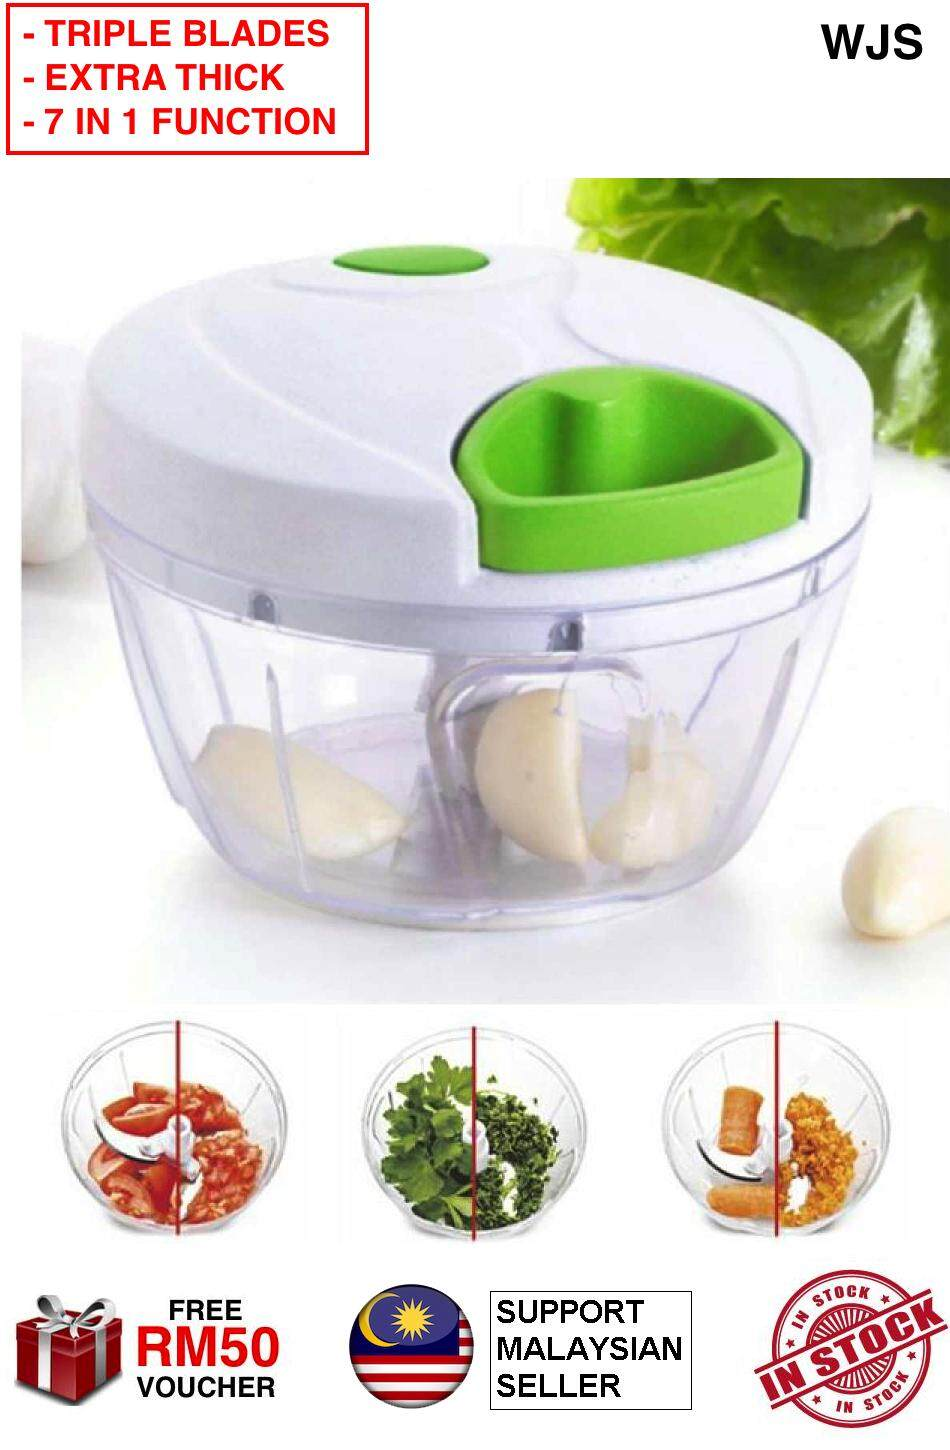 (WITH TRIPLE STAINLESS STEEL BLADES) WJS 2019 Version Extra Thick Multi Function Speedy Chopper Upgraded Version Manual Cyclone Hand Pull Perfect Kitchen Tool Kitchen Utensil     Cut Chop Shred Grind Mince Puree Mash 3 BLADES GREEN [FREE RM 50 VOUCHER]